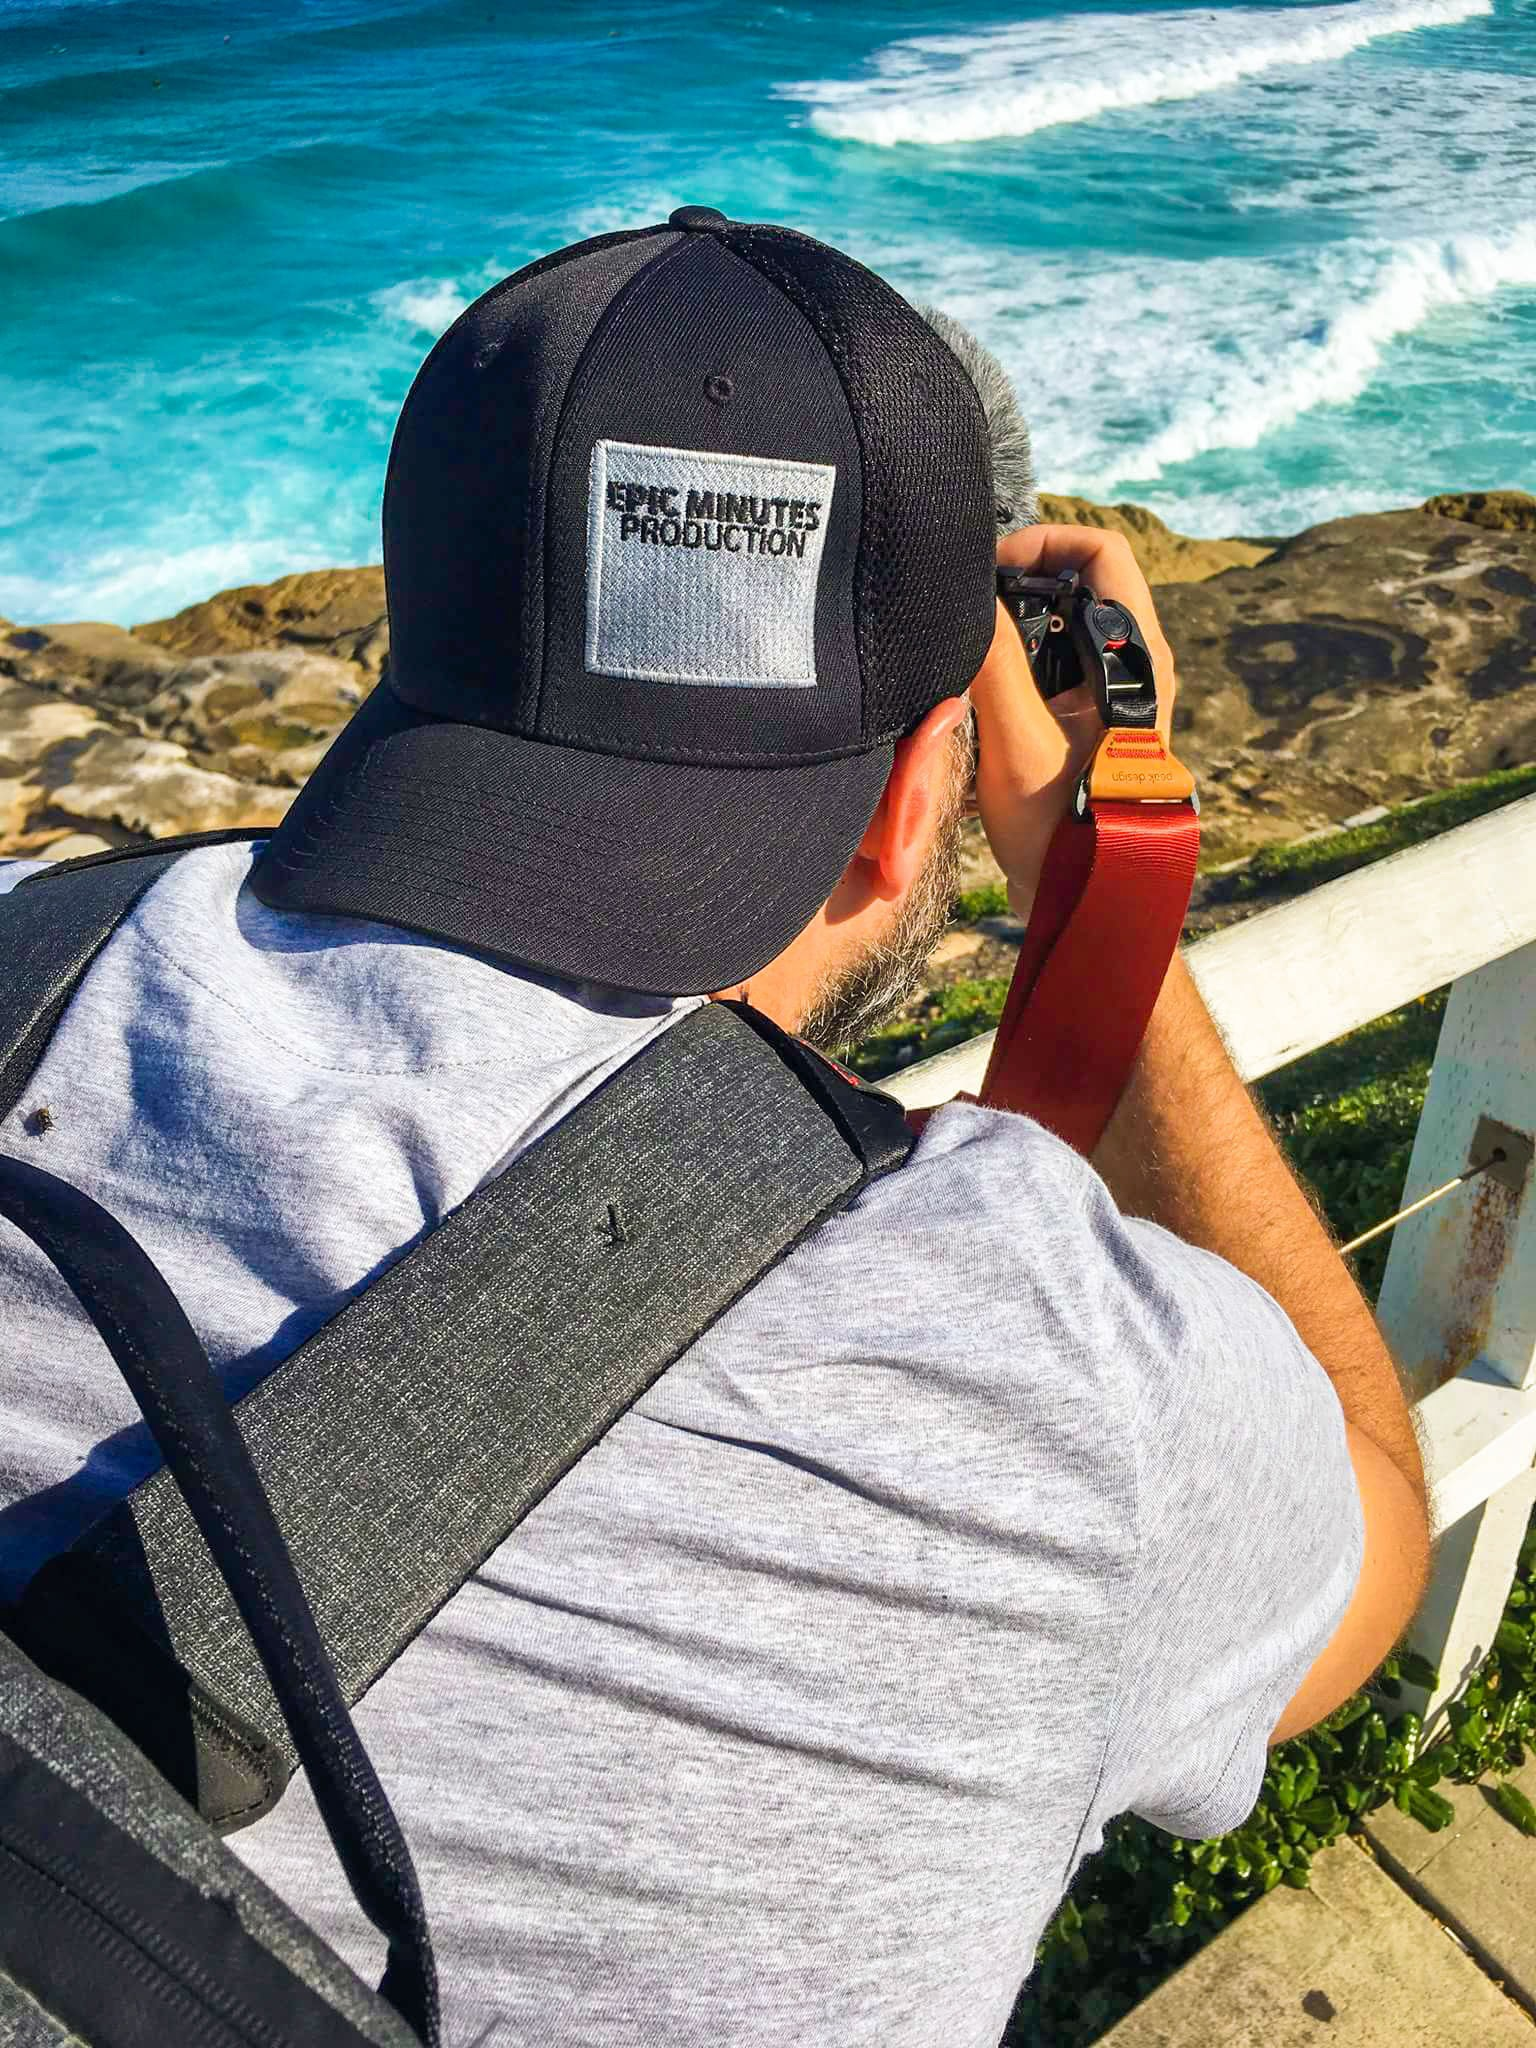 Dad in Action #epicminutesproductions  Bondi to Coogee Coastal walk  Bronte Beach, Sydney